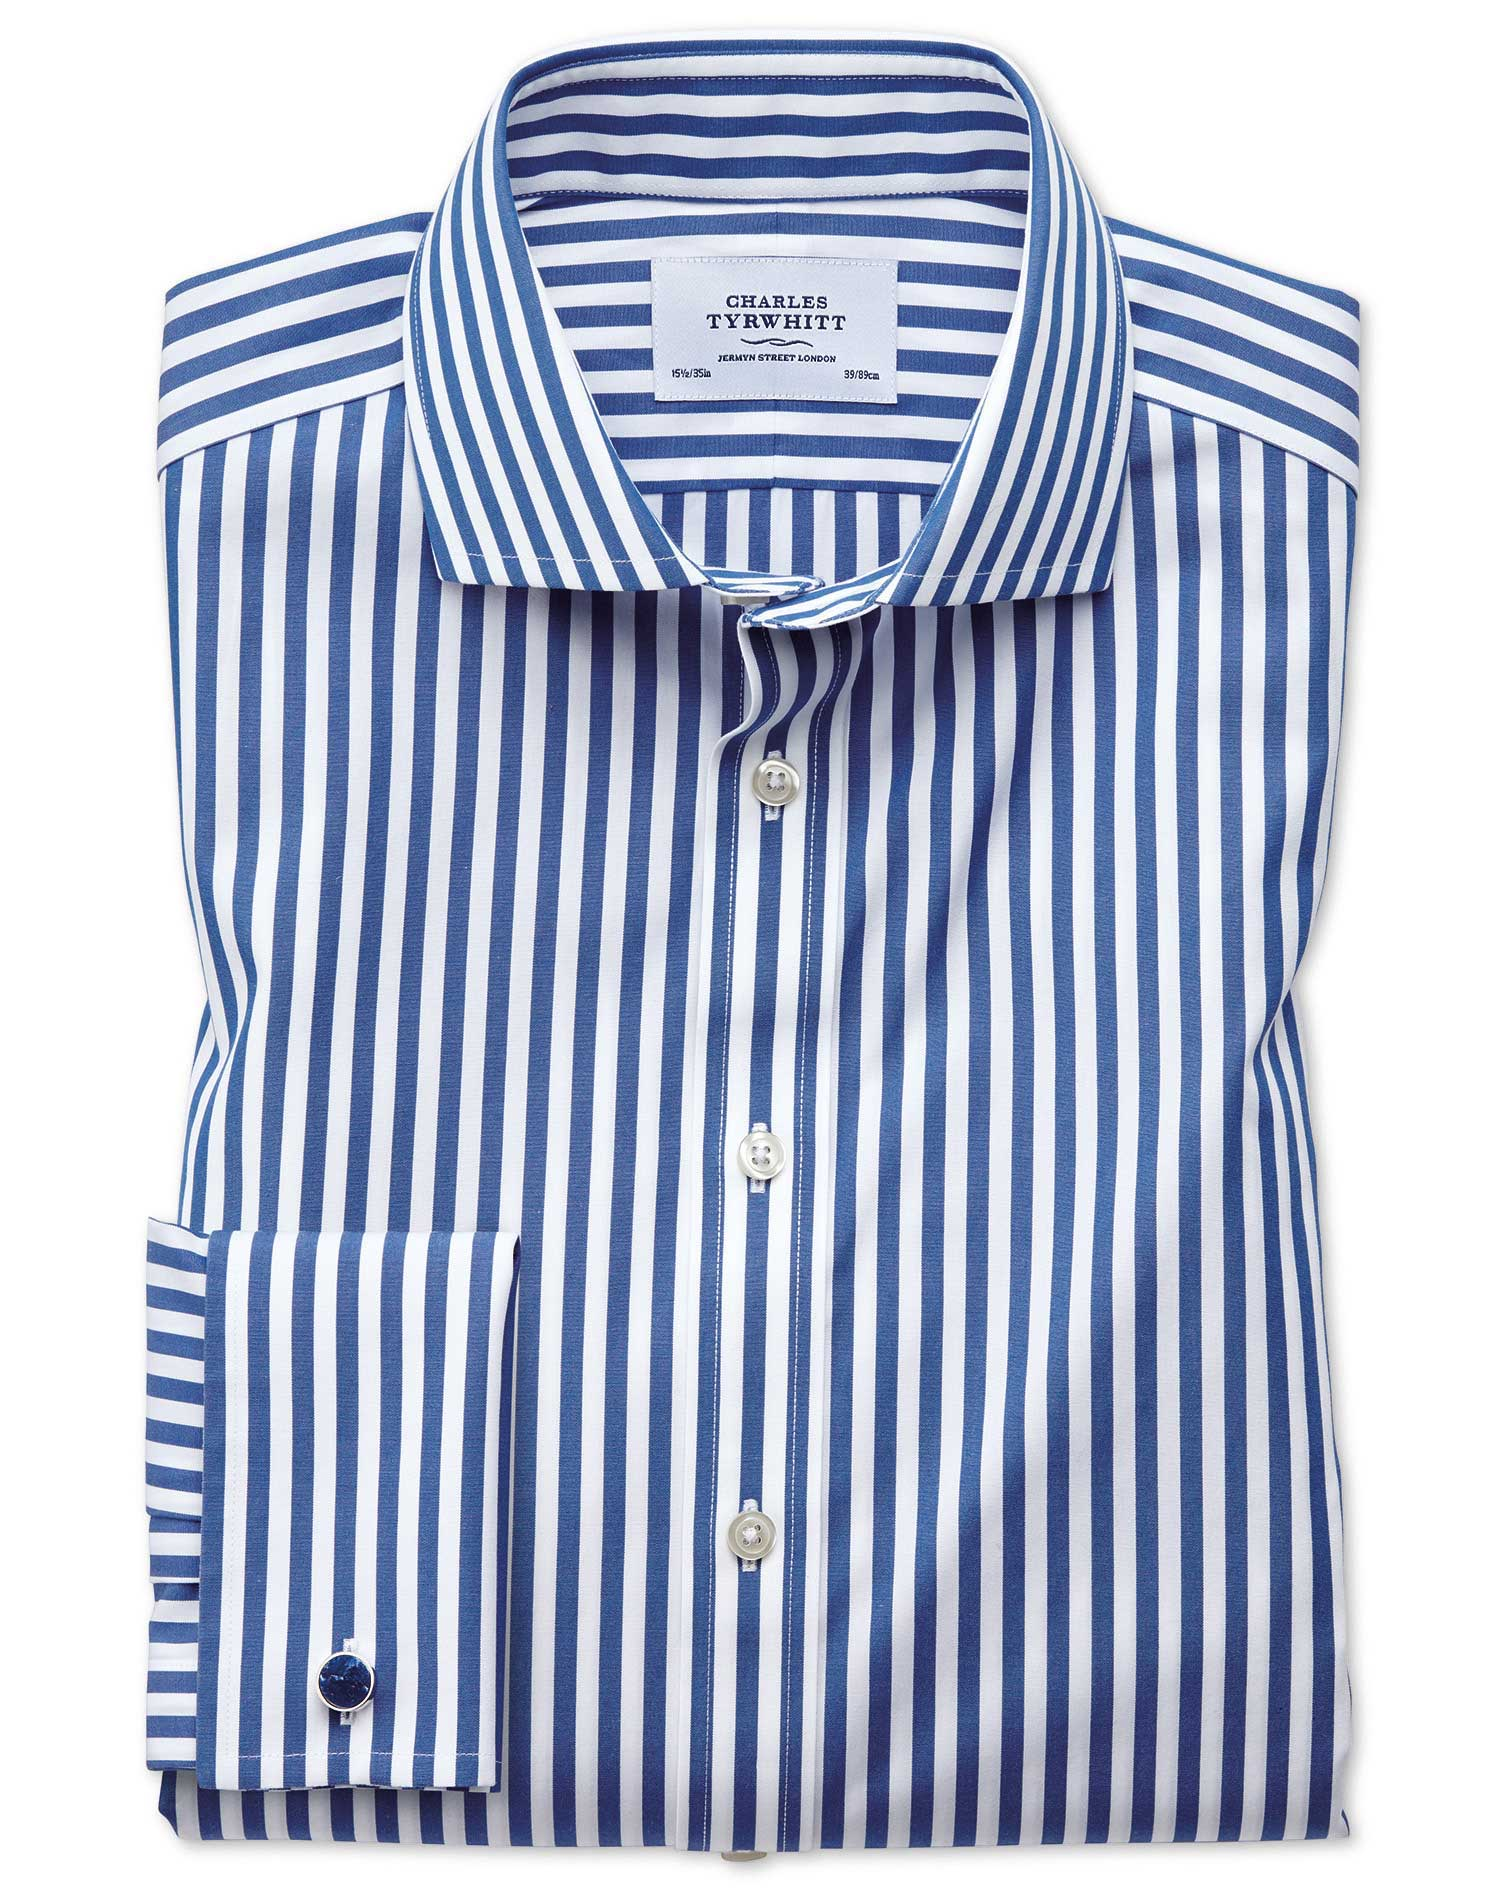 Slim Fit Cutaway Non-Iron Bengal Stripe Blue Cotton Formal Shirt Single Cuff Size 16/33 by Charles T